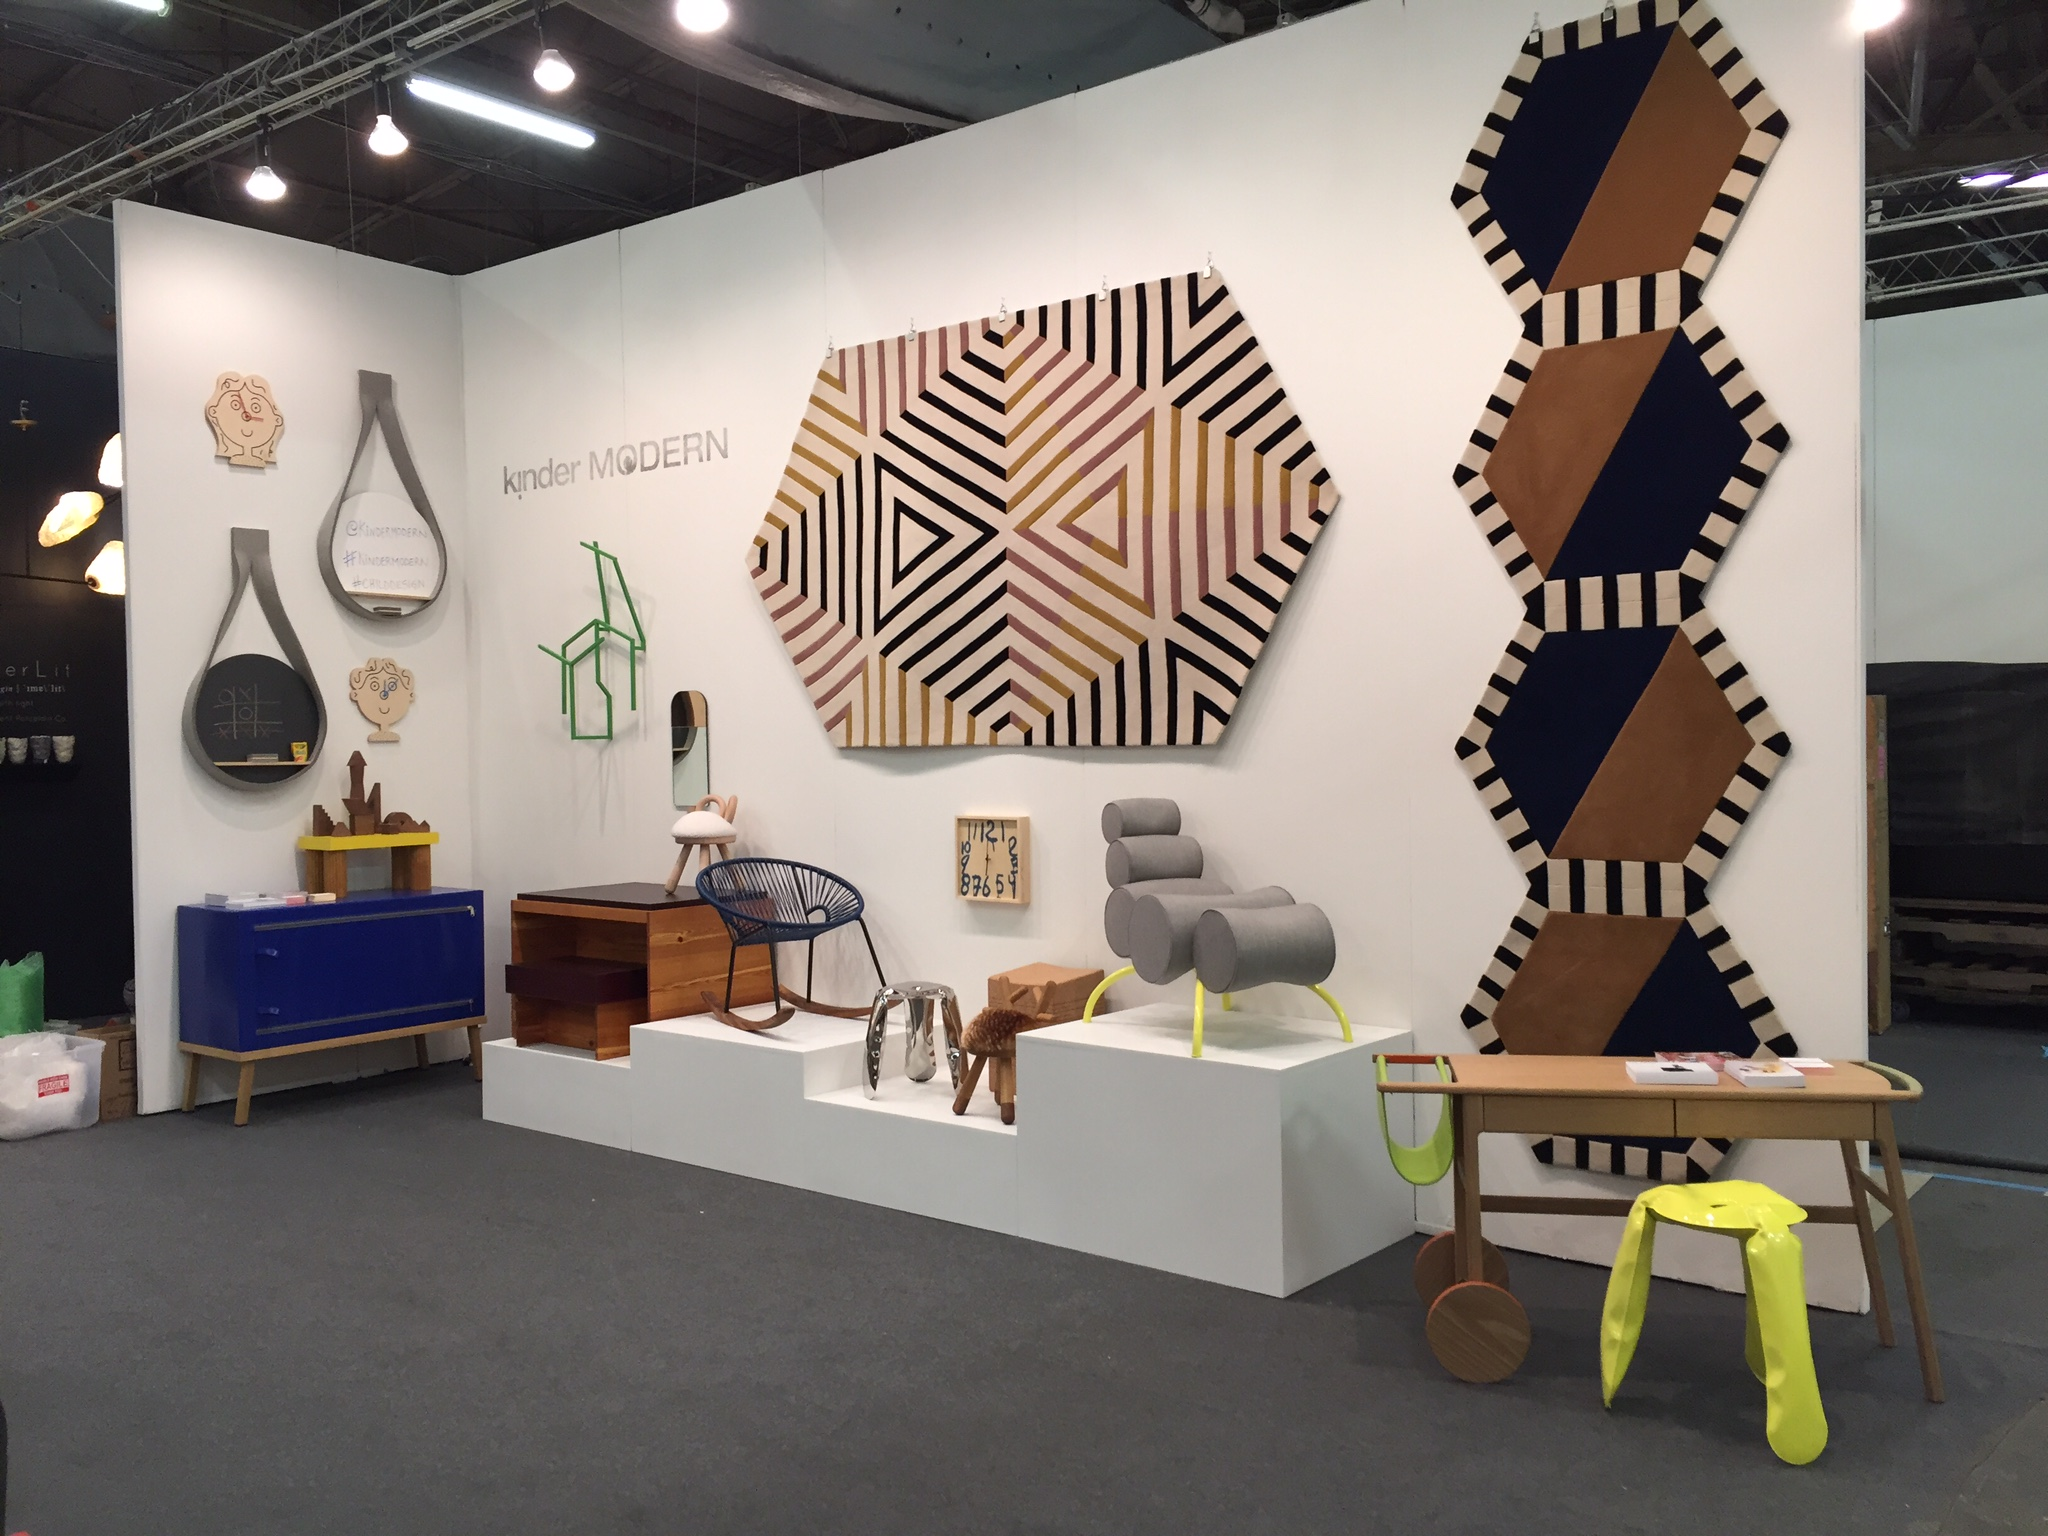 Kinder Modern At The Architectural Digest Design Show Experience Nomad